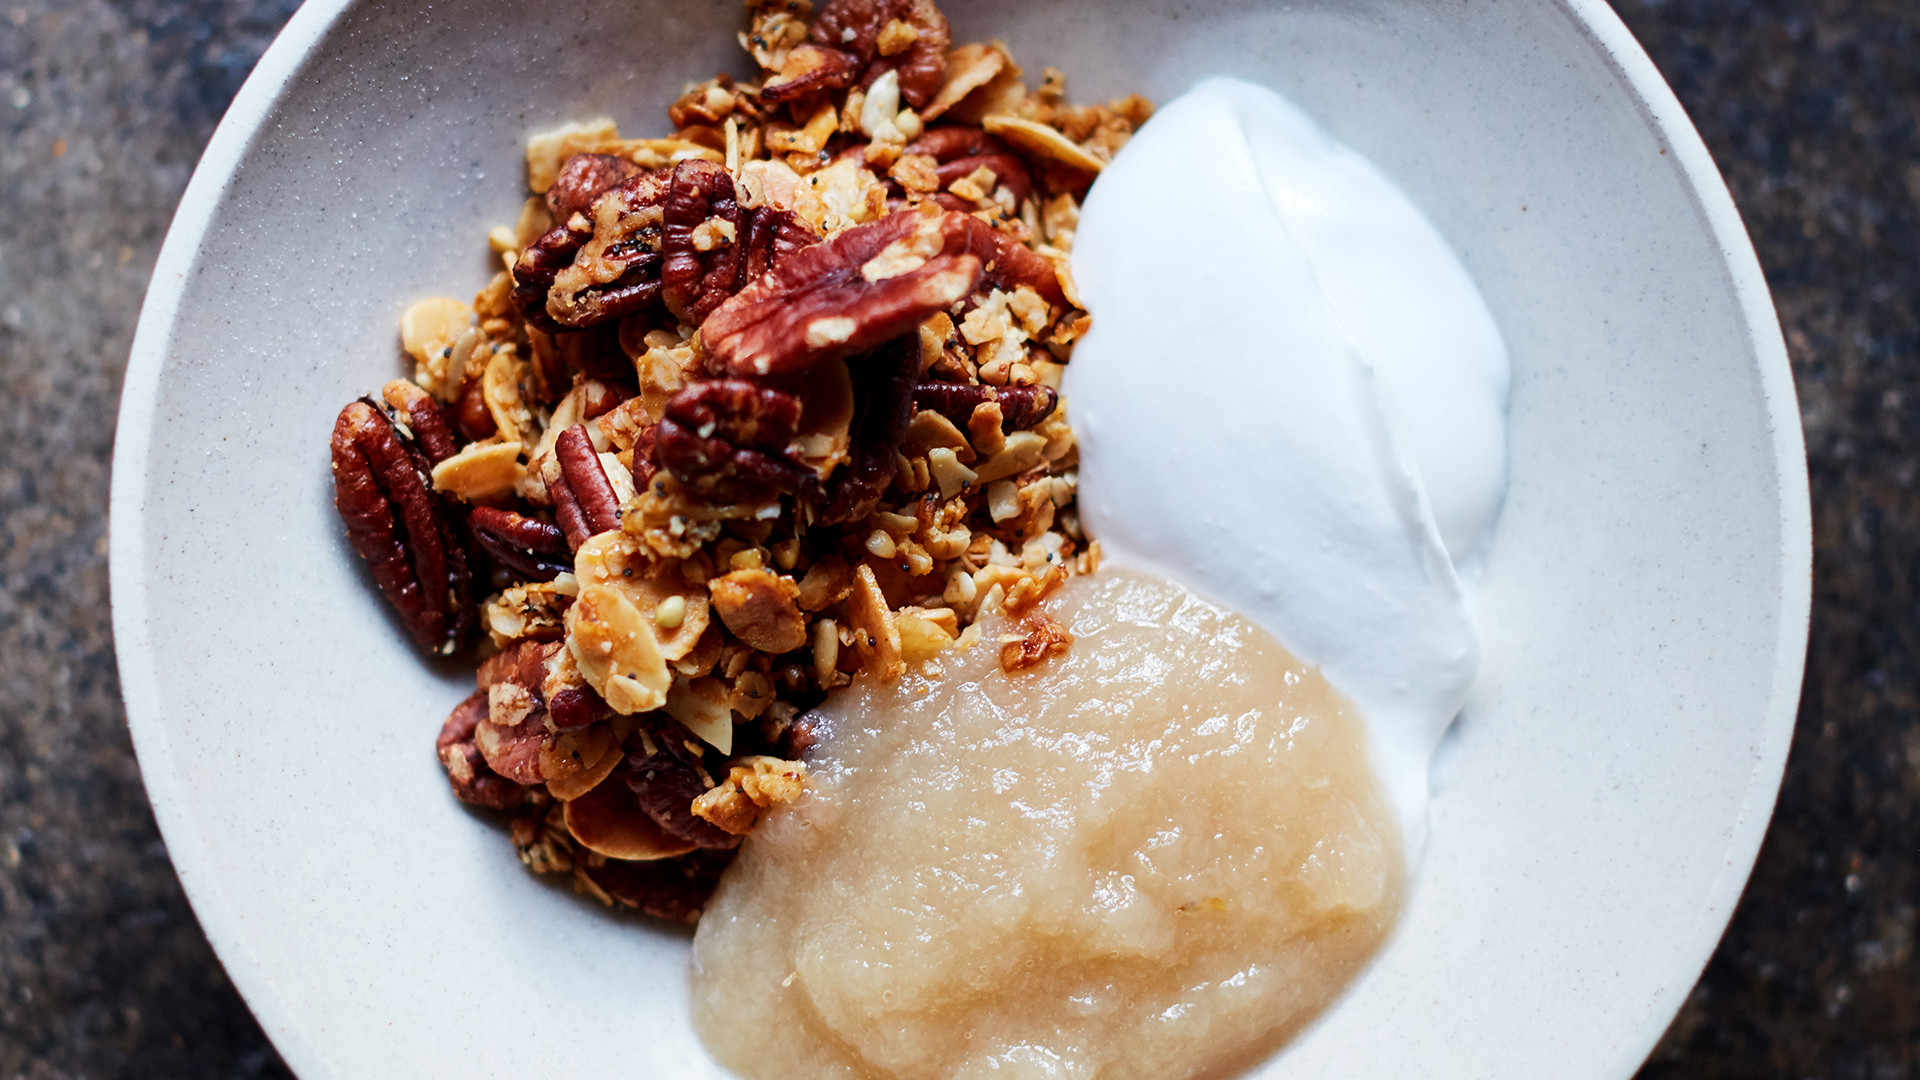 Granola at Levan in Peckham